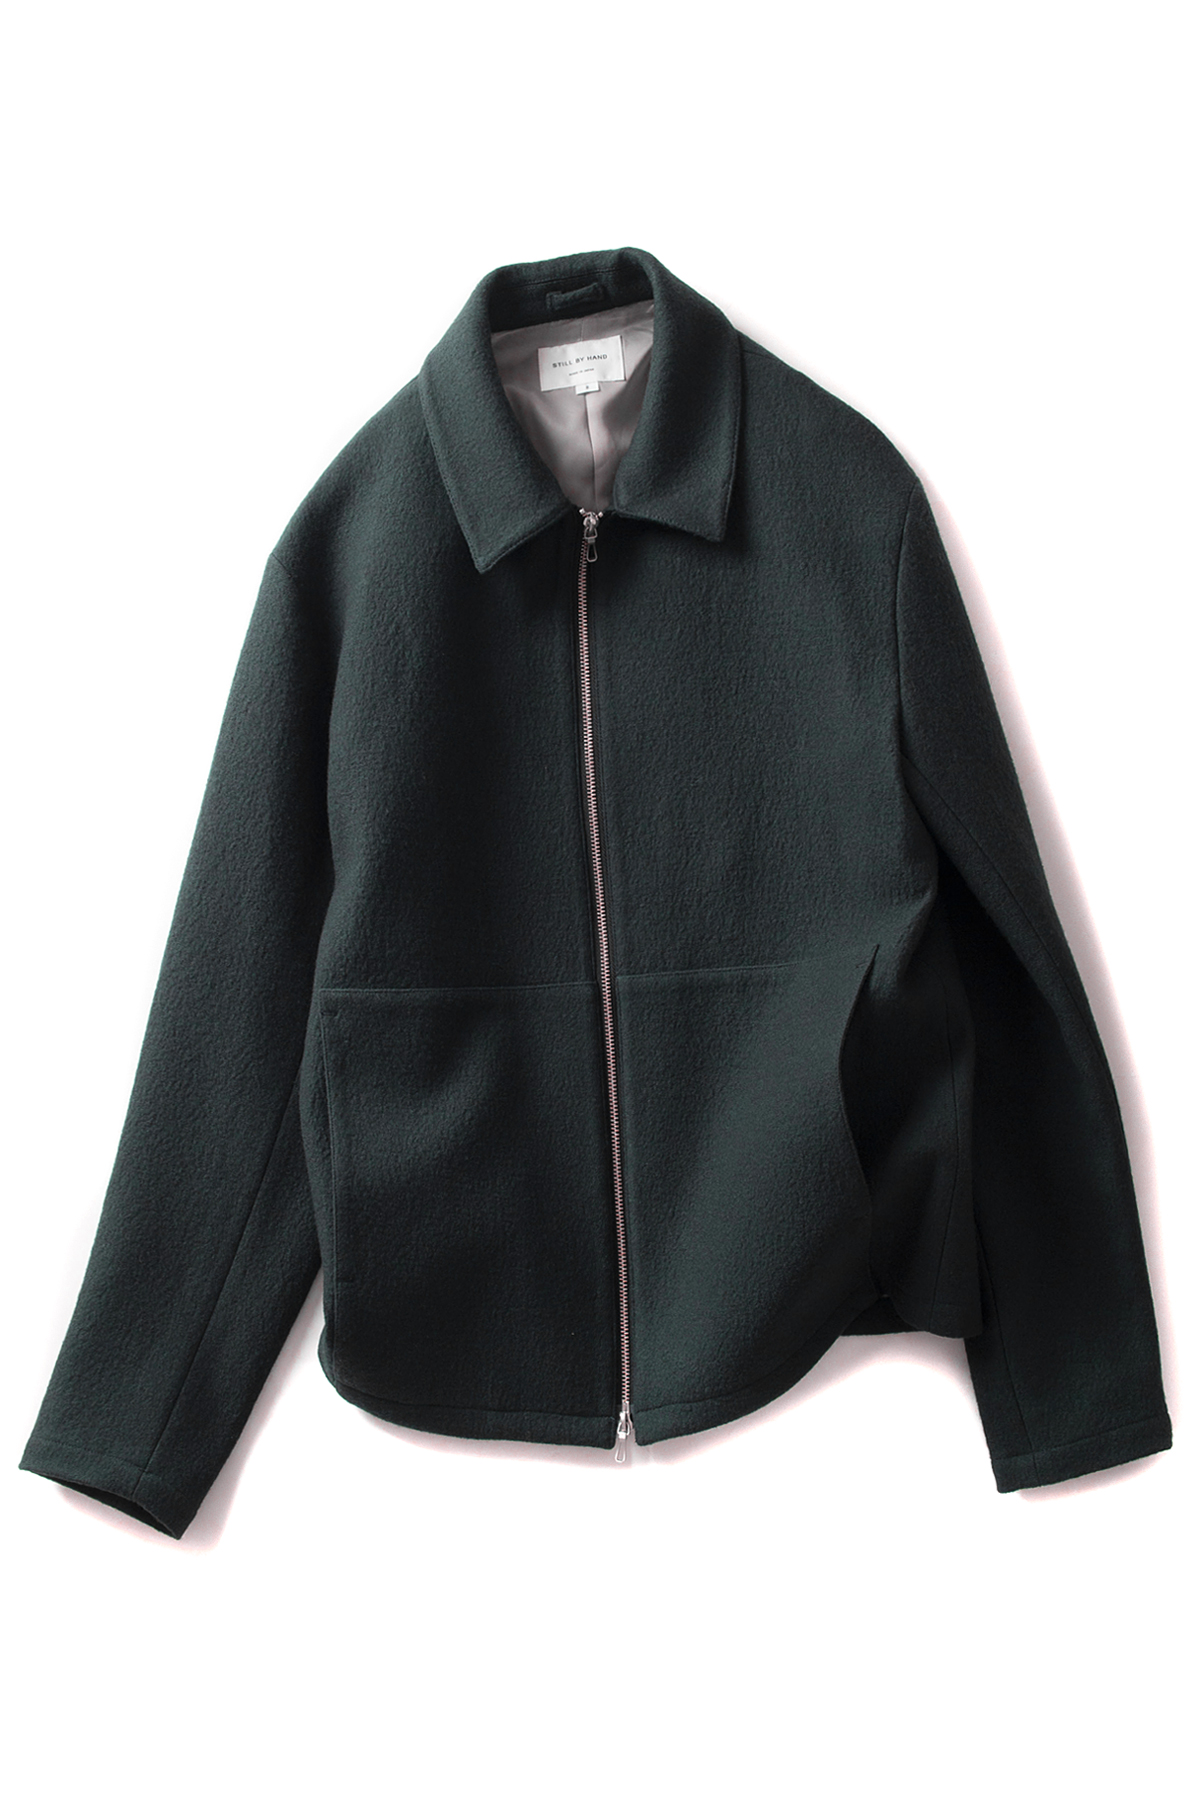 Still by Hand : Loop Yarn Zip-Up Blouson (Green)